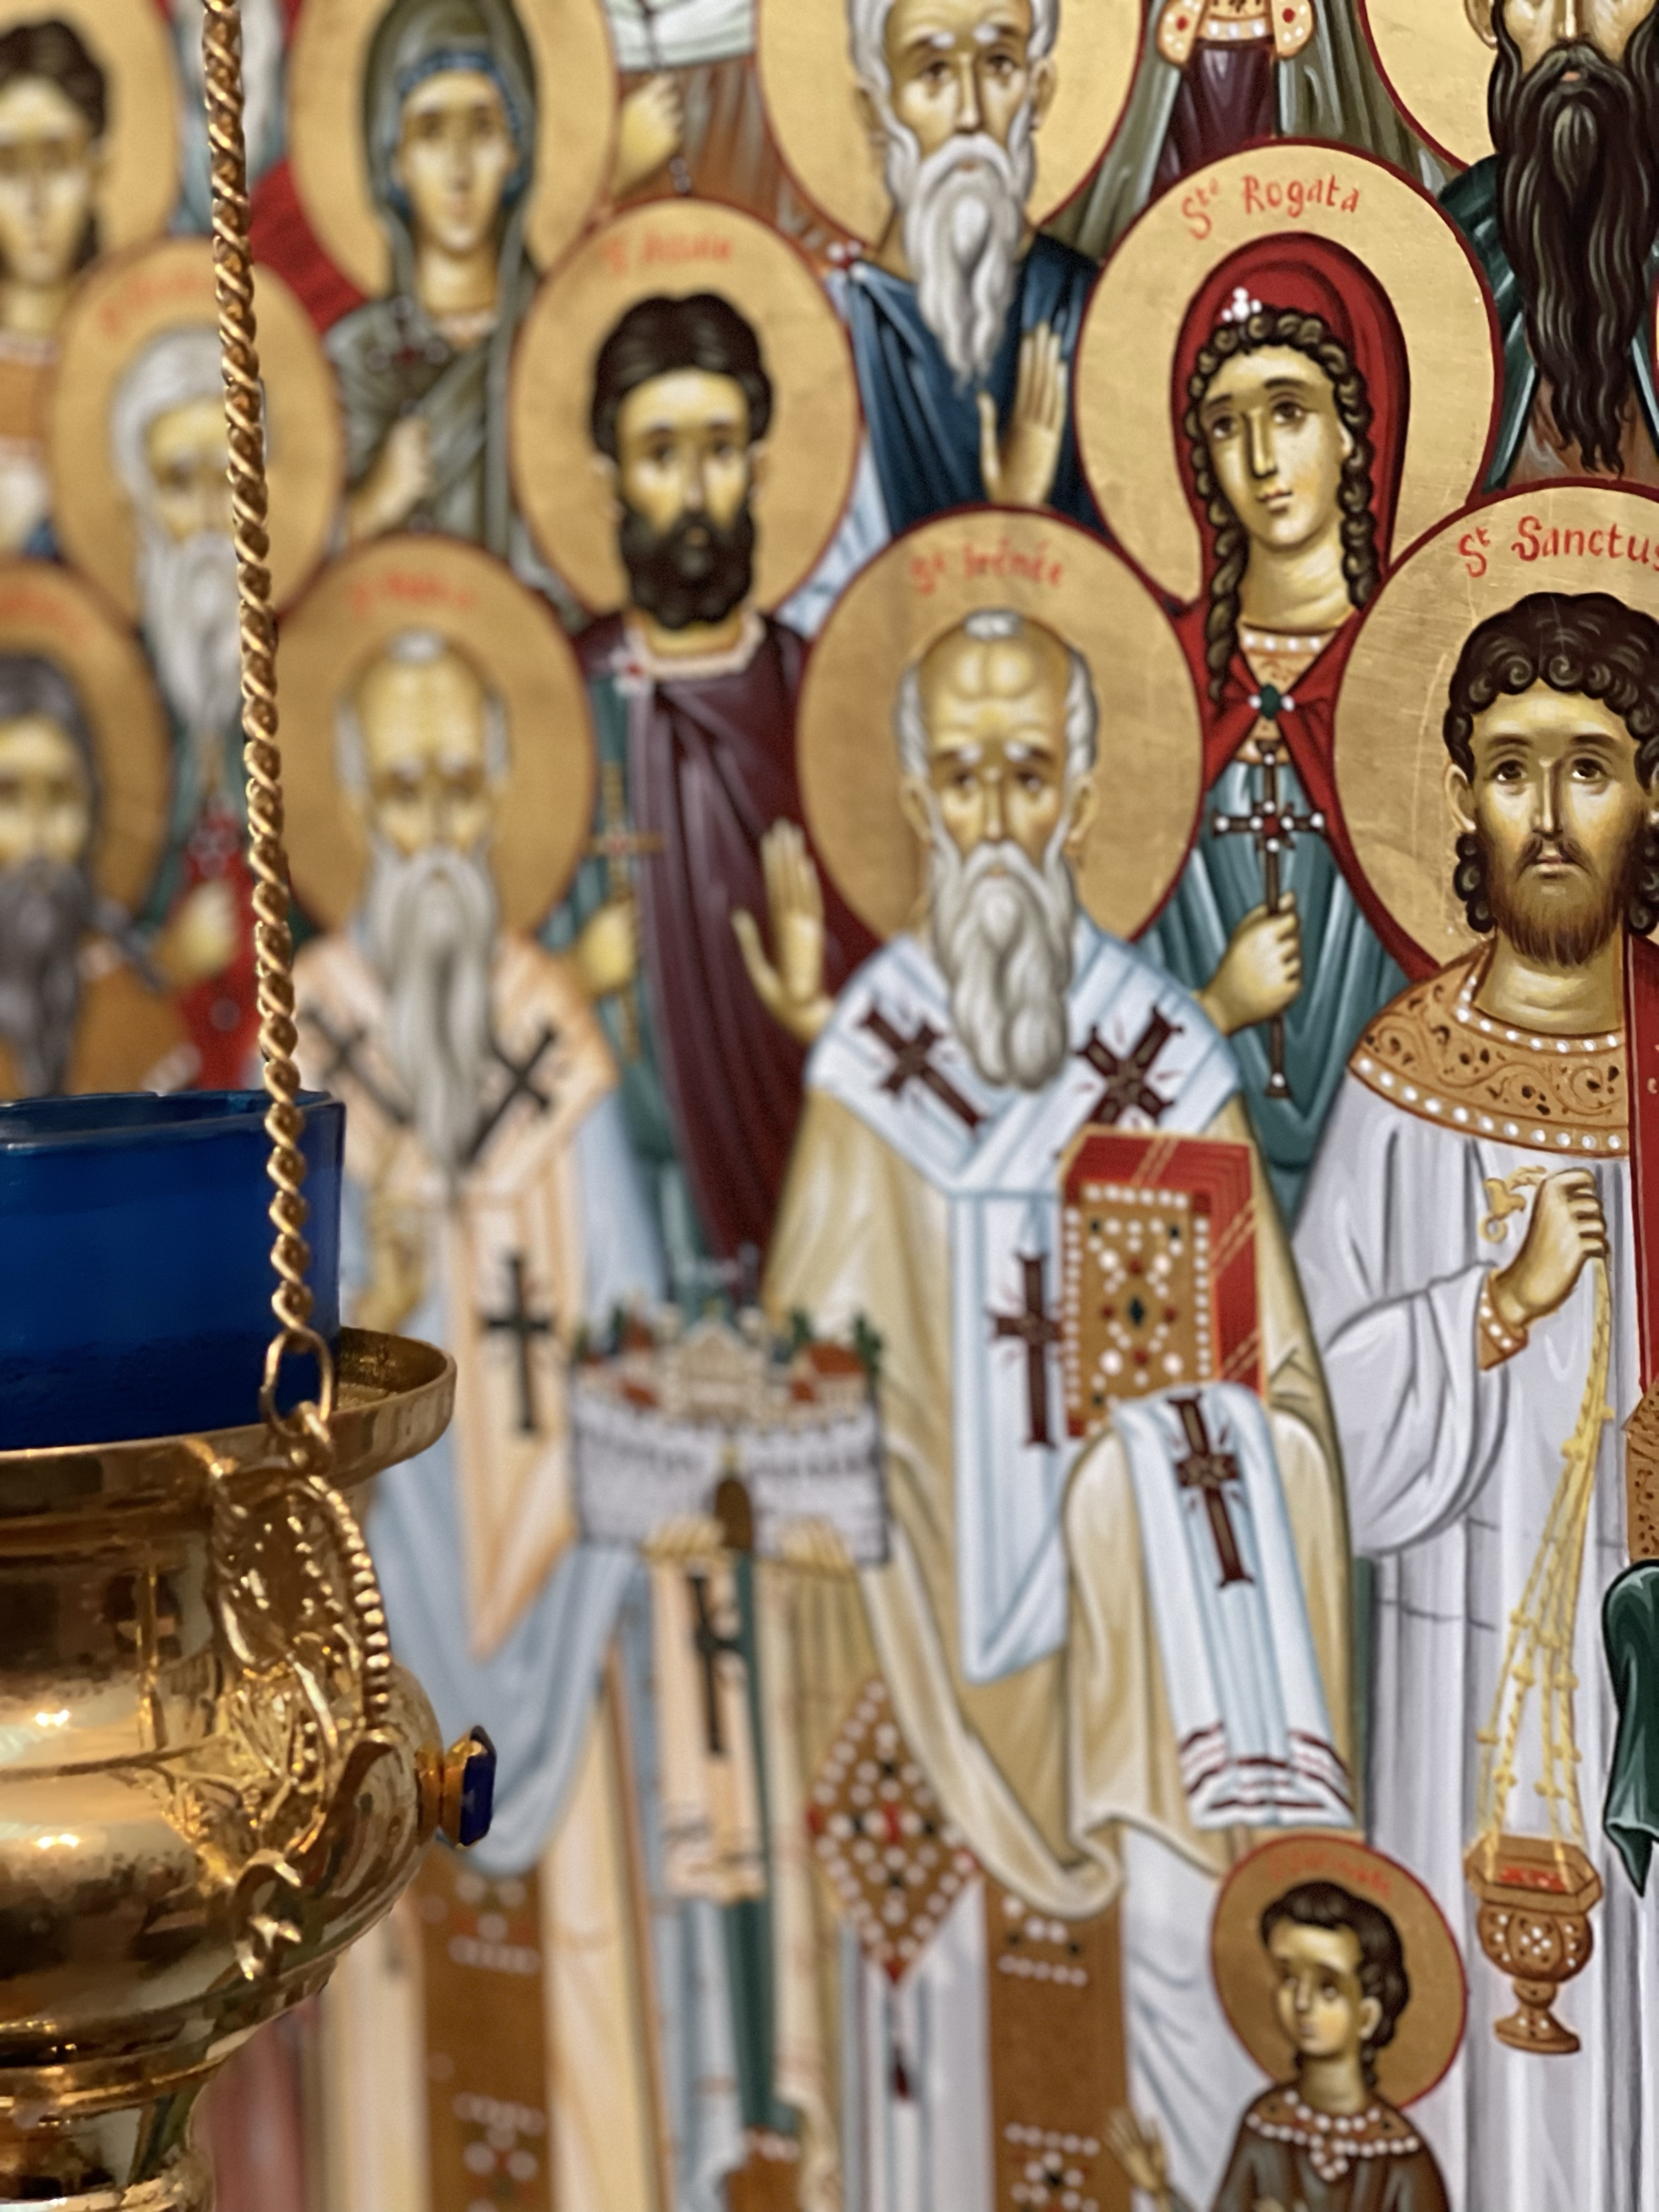 Sermon of Bishop Irenei for the Feastday of St Irenei of Lyon, Offered at the Tomb of the Saint.